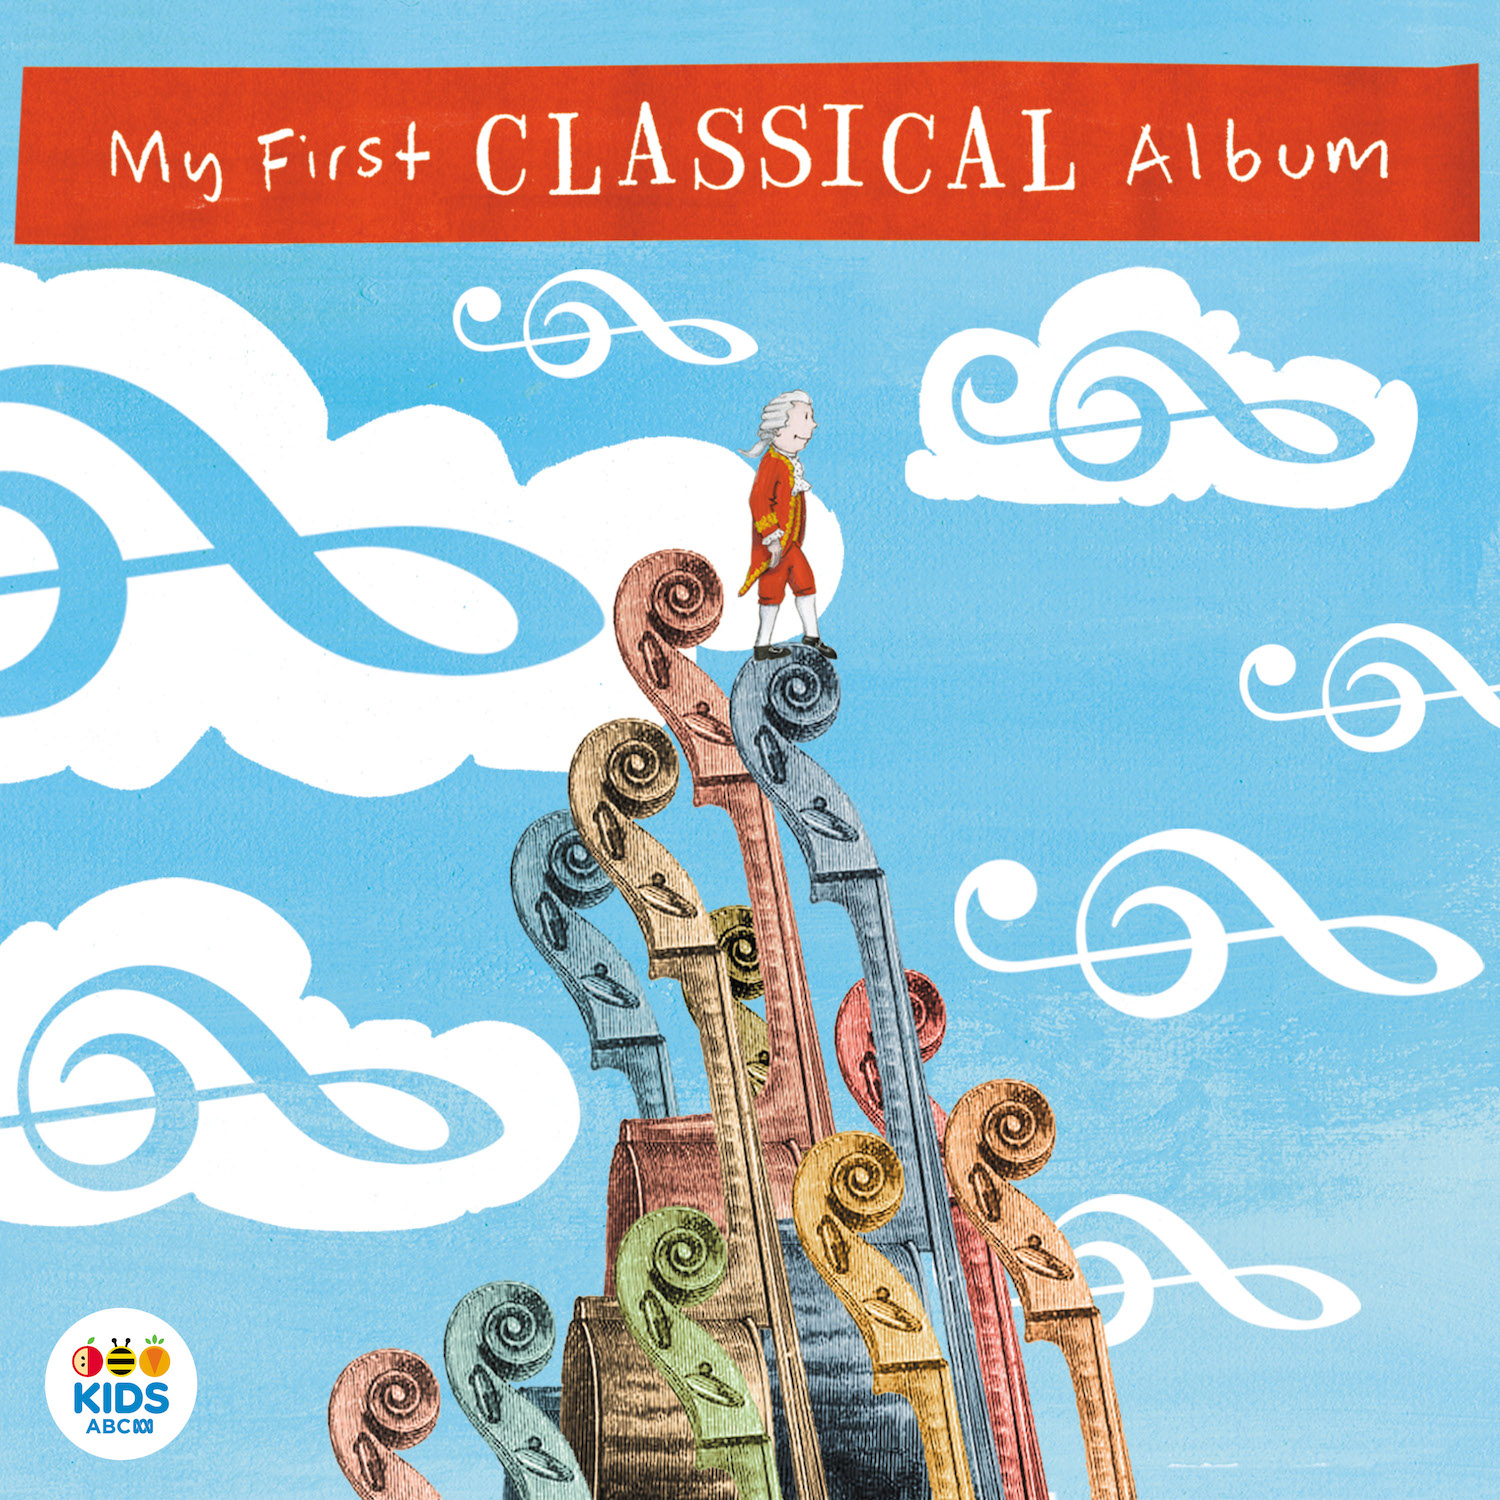 Cover_Art_My First Classical Album_Rel_May13_ABC Kids.jpeg